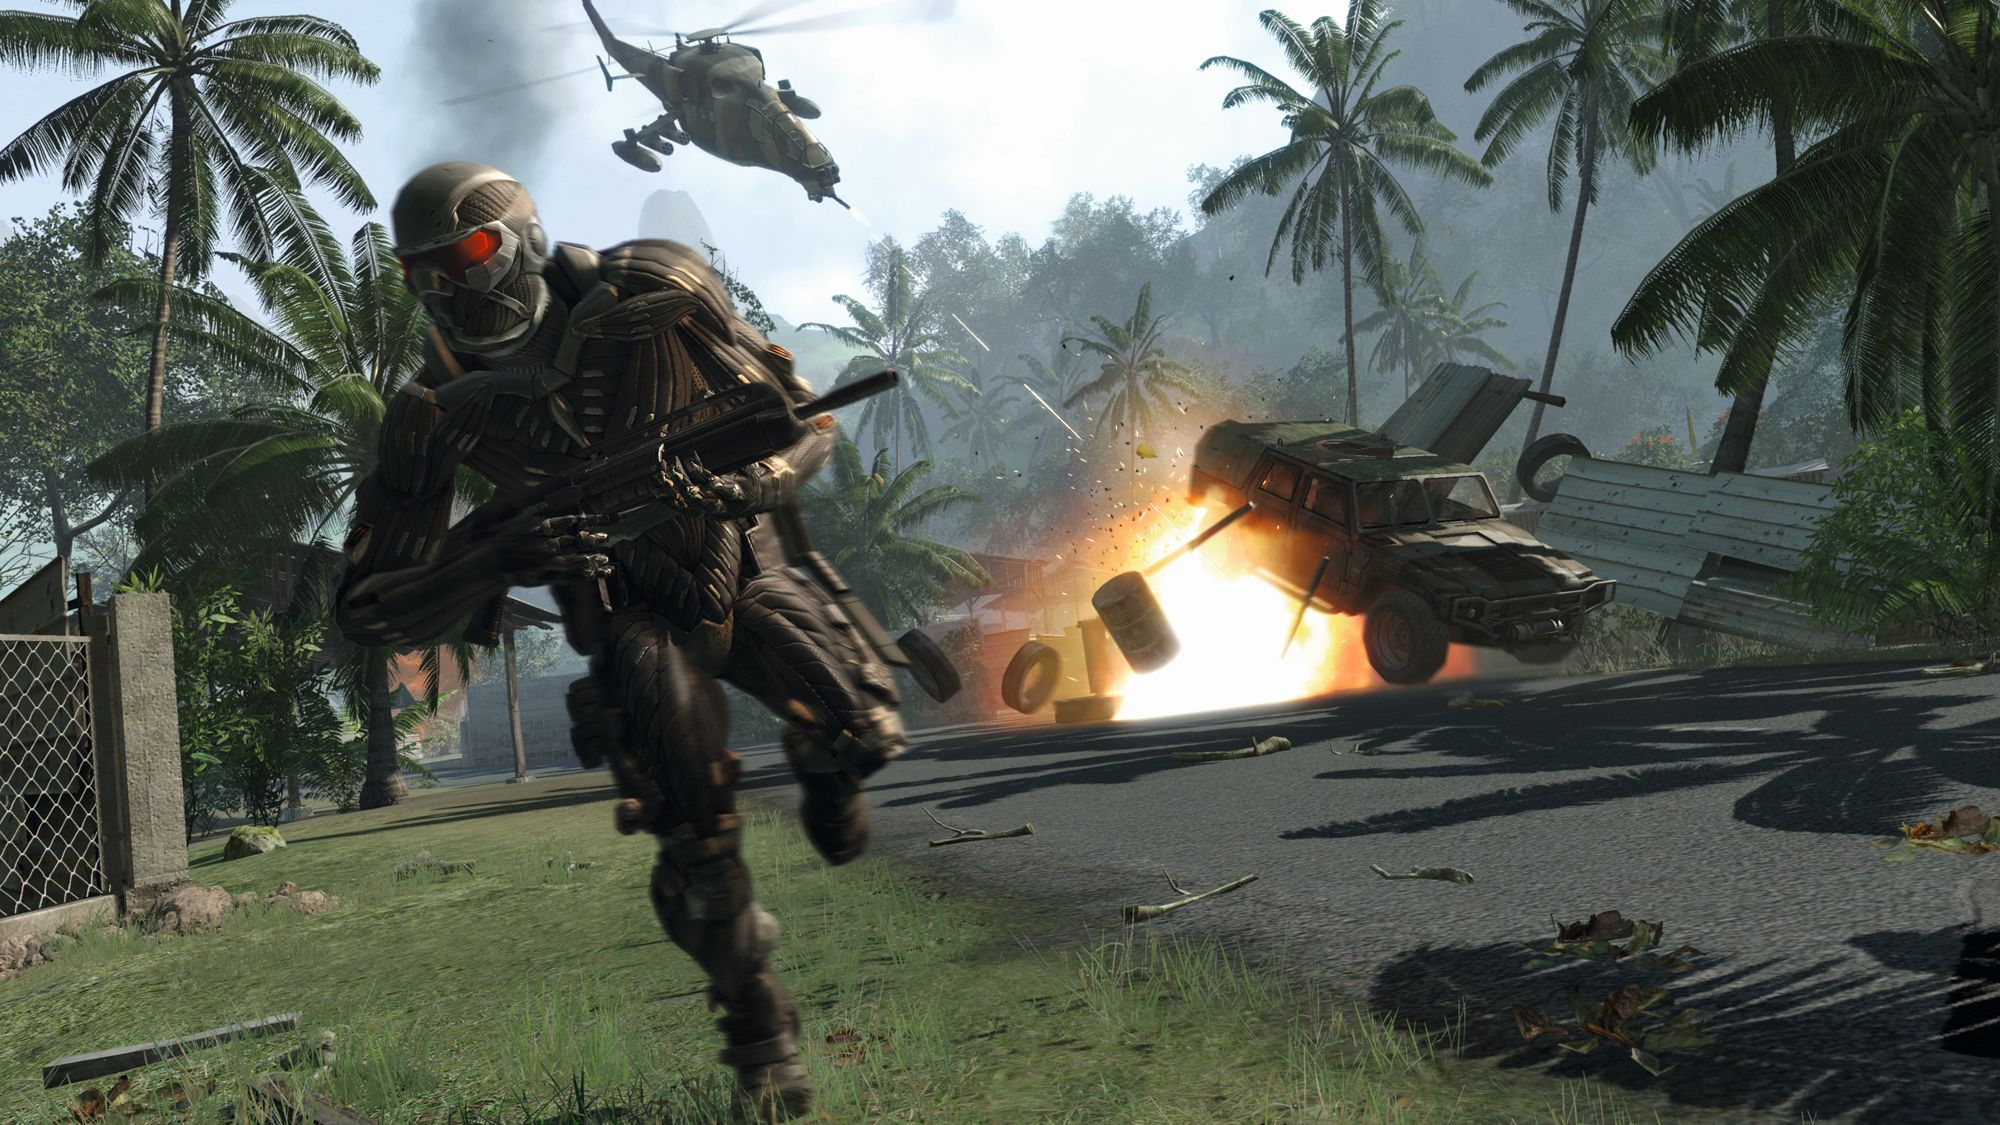 Crysis PC Game Overview